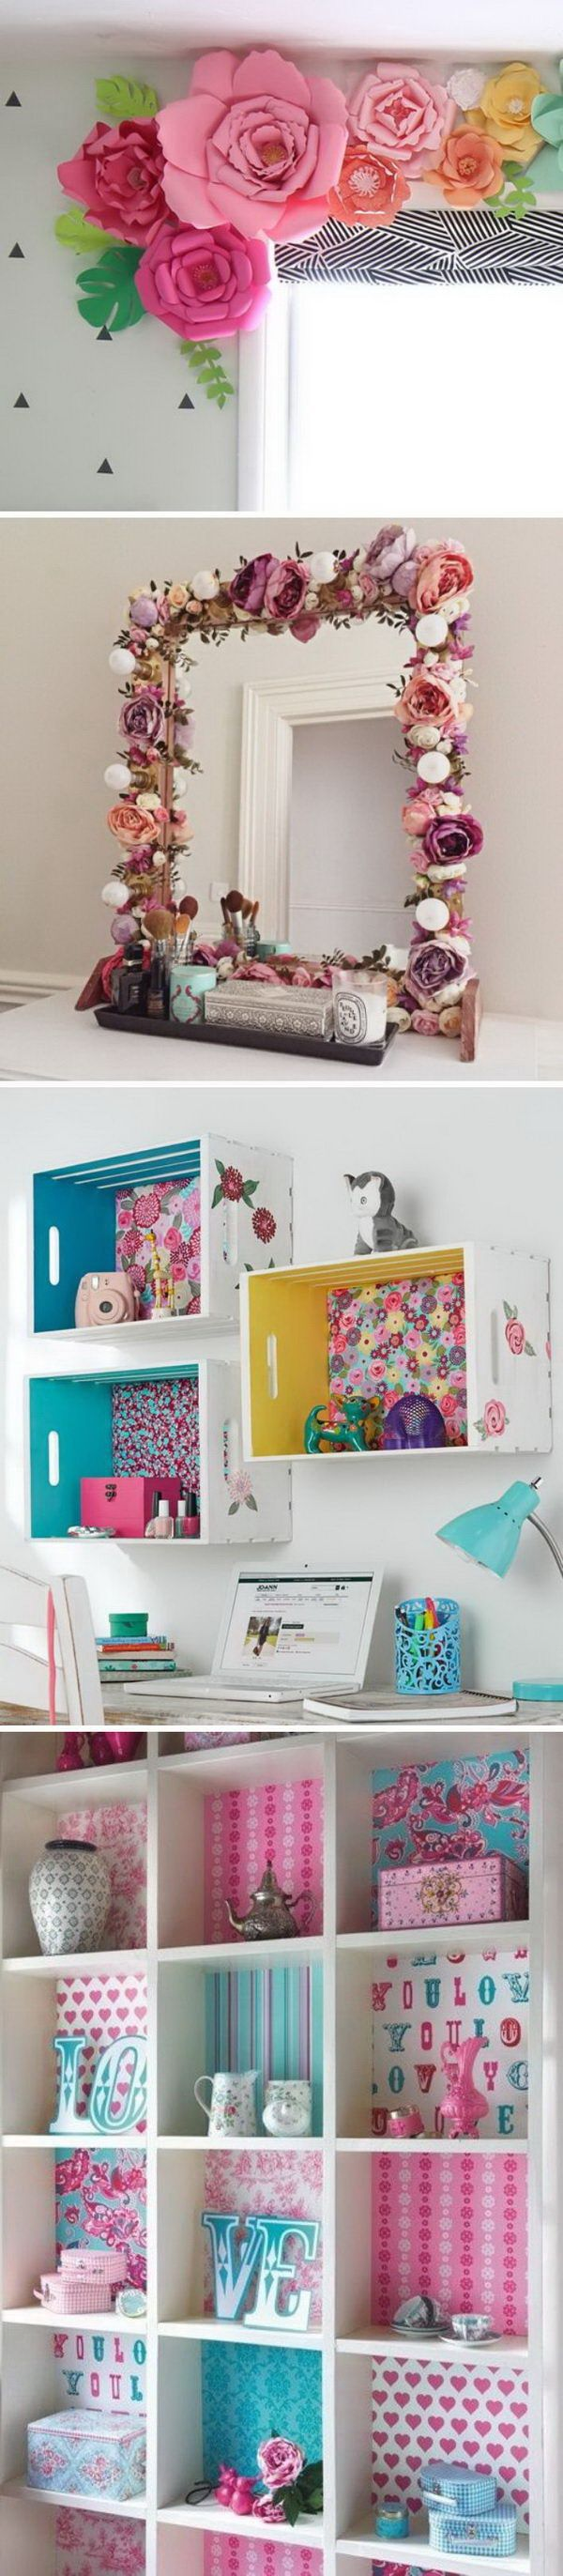 23 stylish teen girl's bedroom ideas | teen style, teen and bedrooms